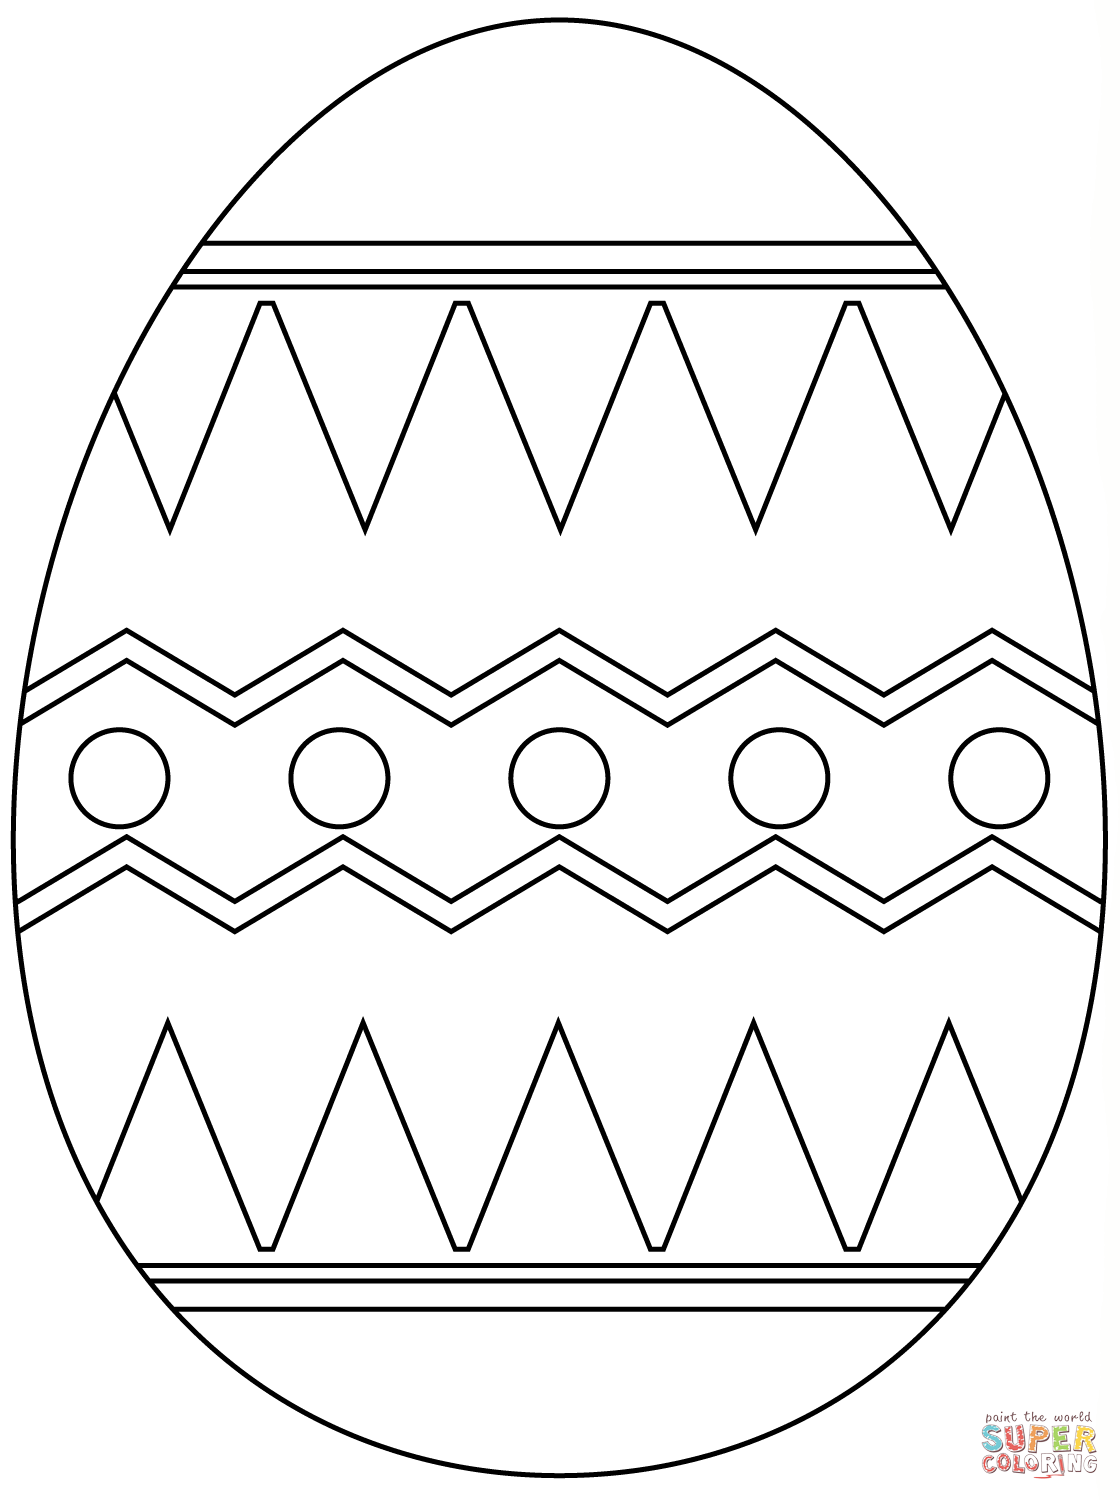 Easter Egg Coloring Pages Easter Crafts For Toddlers Easter Coloring Pages Easter Colouring